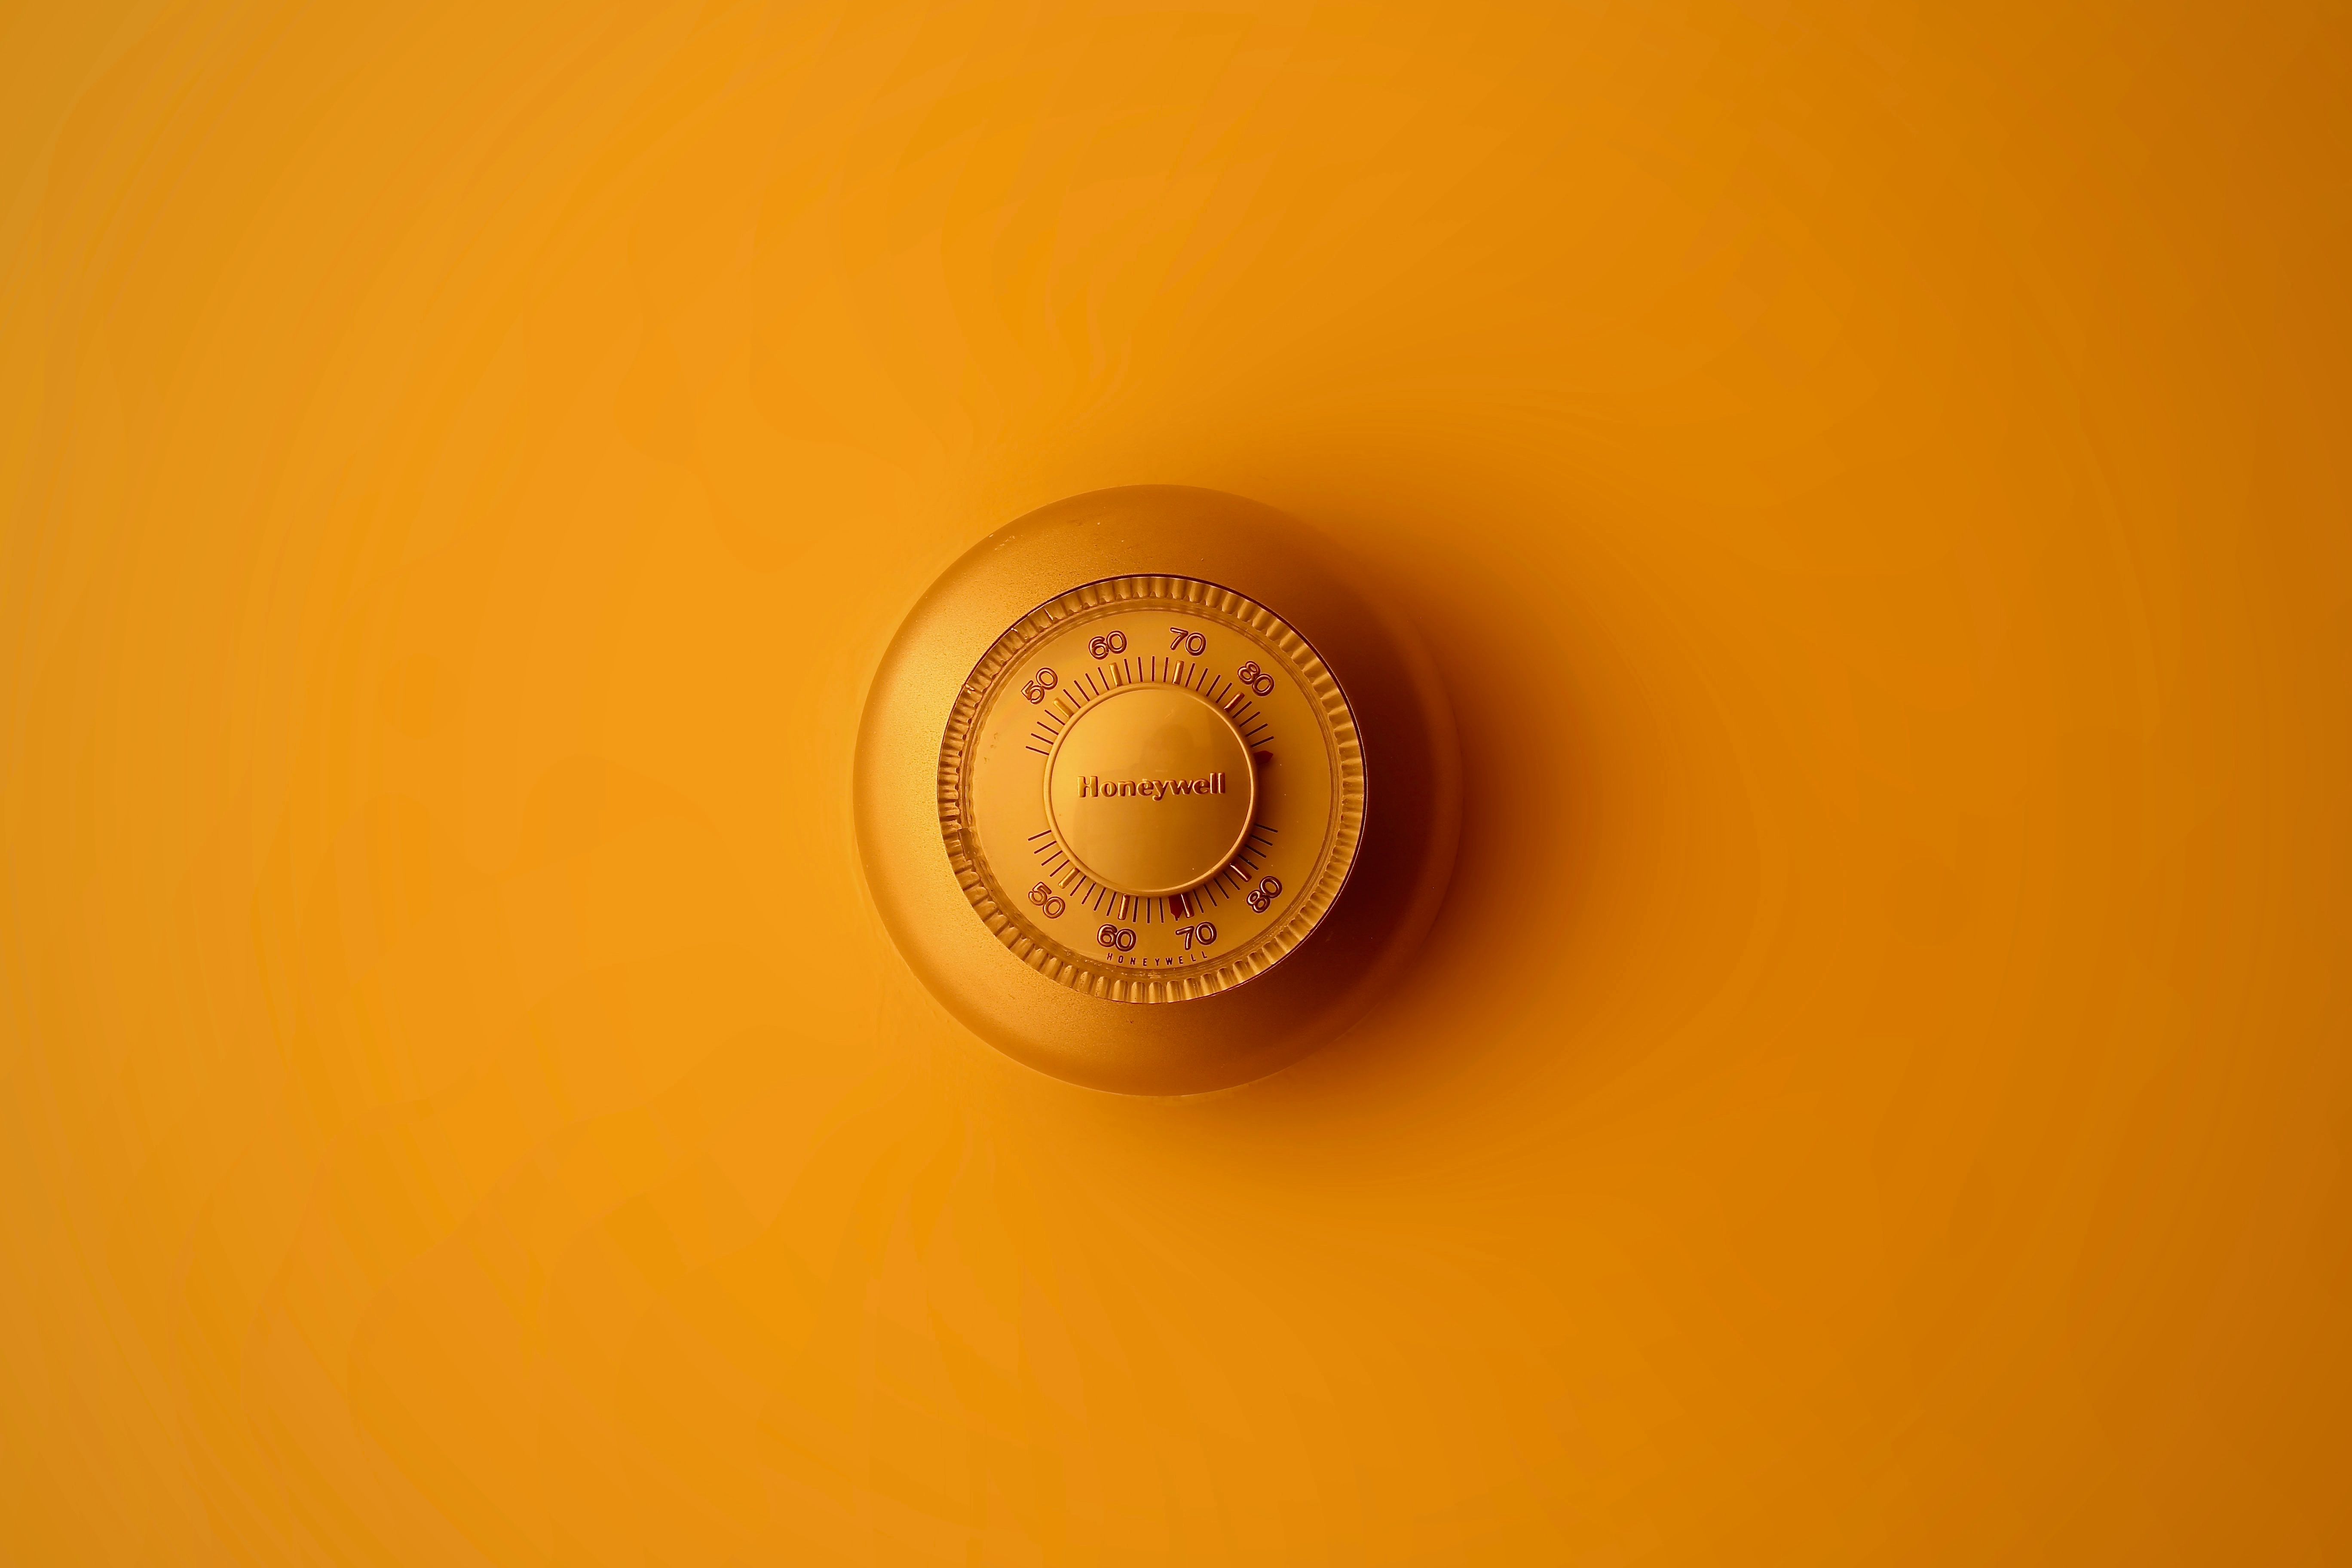 a turned down thermostat makes a big difference